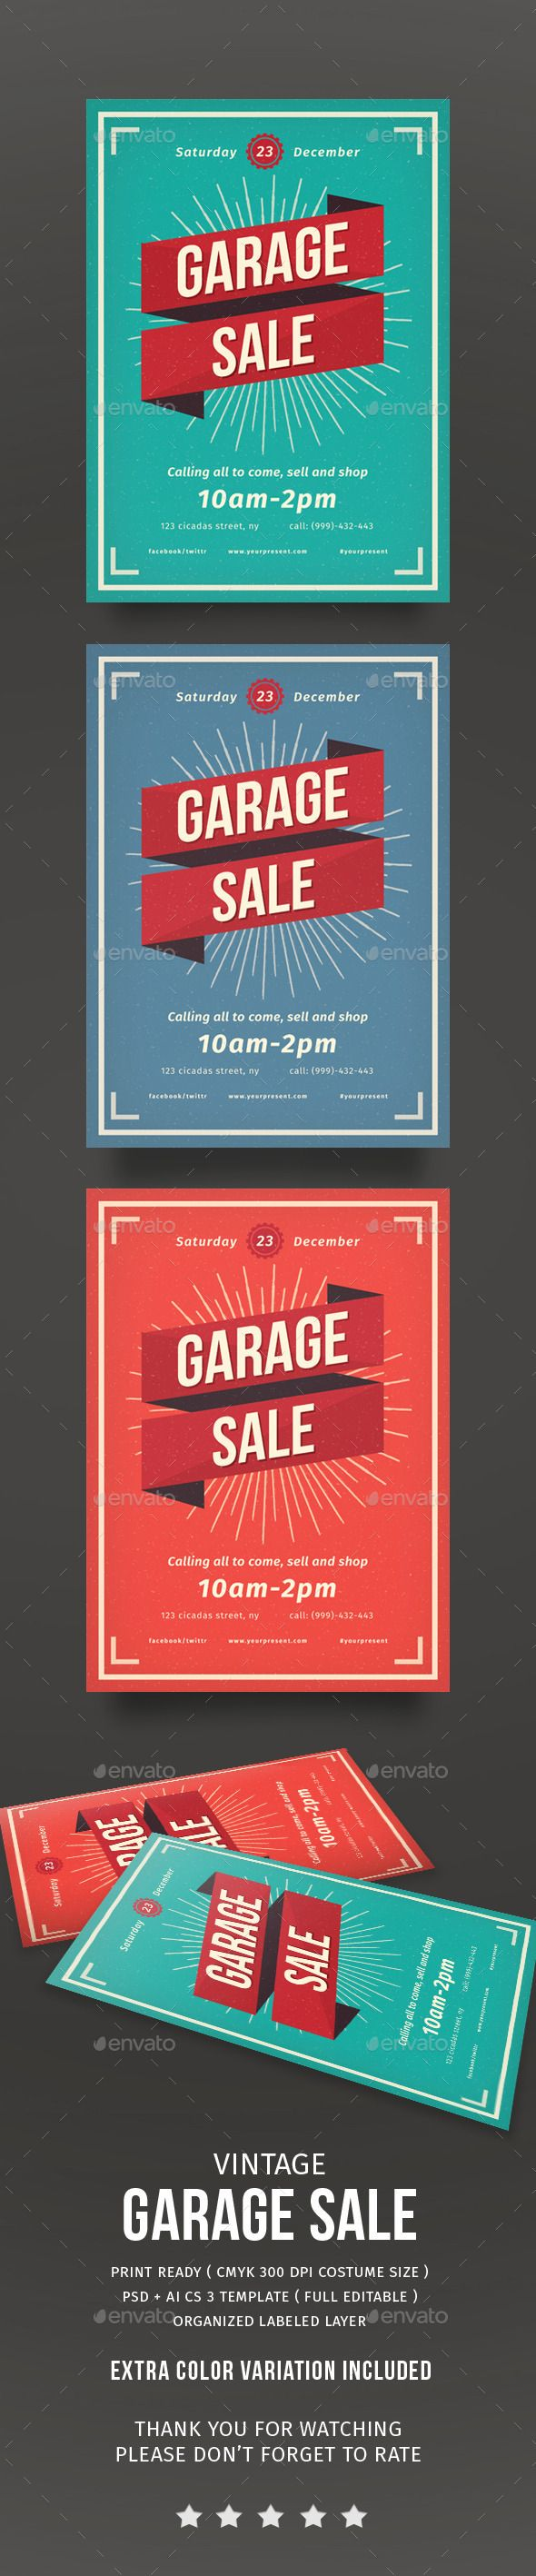 best images about garage behance flyer 17 best images about garage behance flyer template and design